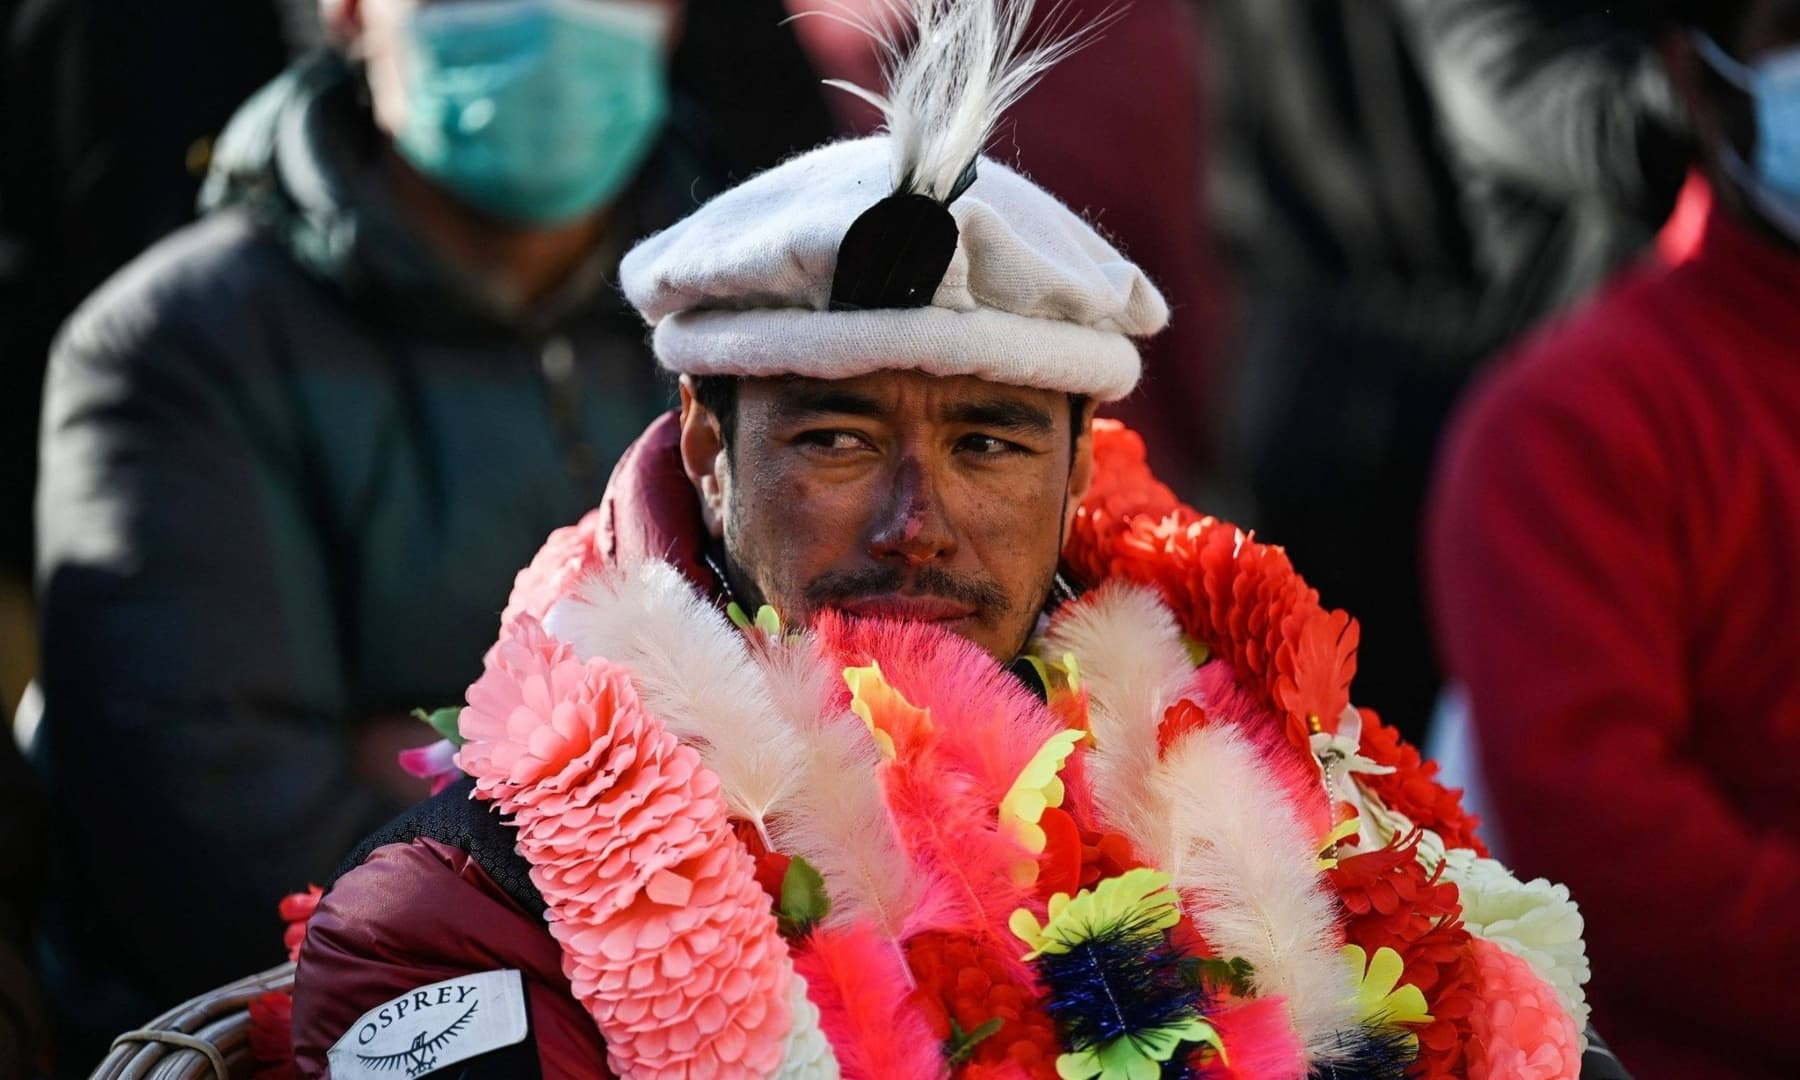 Nepal's climber Nirmal Purja at a welcome ceremony after becoming with his team, the firsts to summit Pakistan's K2 in winter, at Shigar district in Gilgit-Baltistan, Jan 20, 2021. — AFP